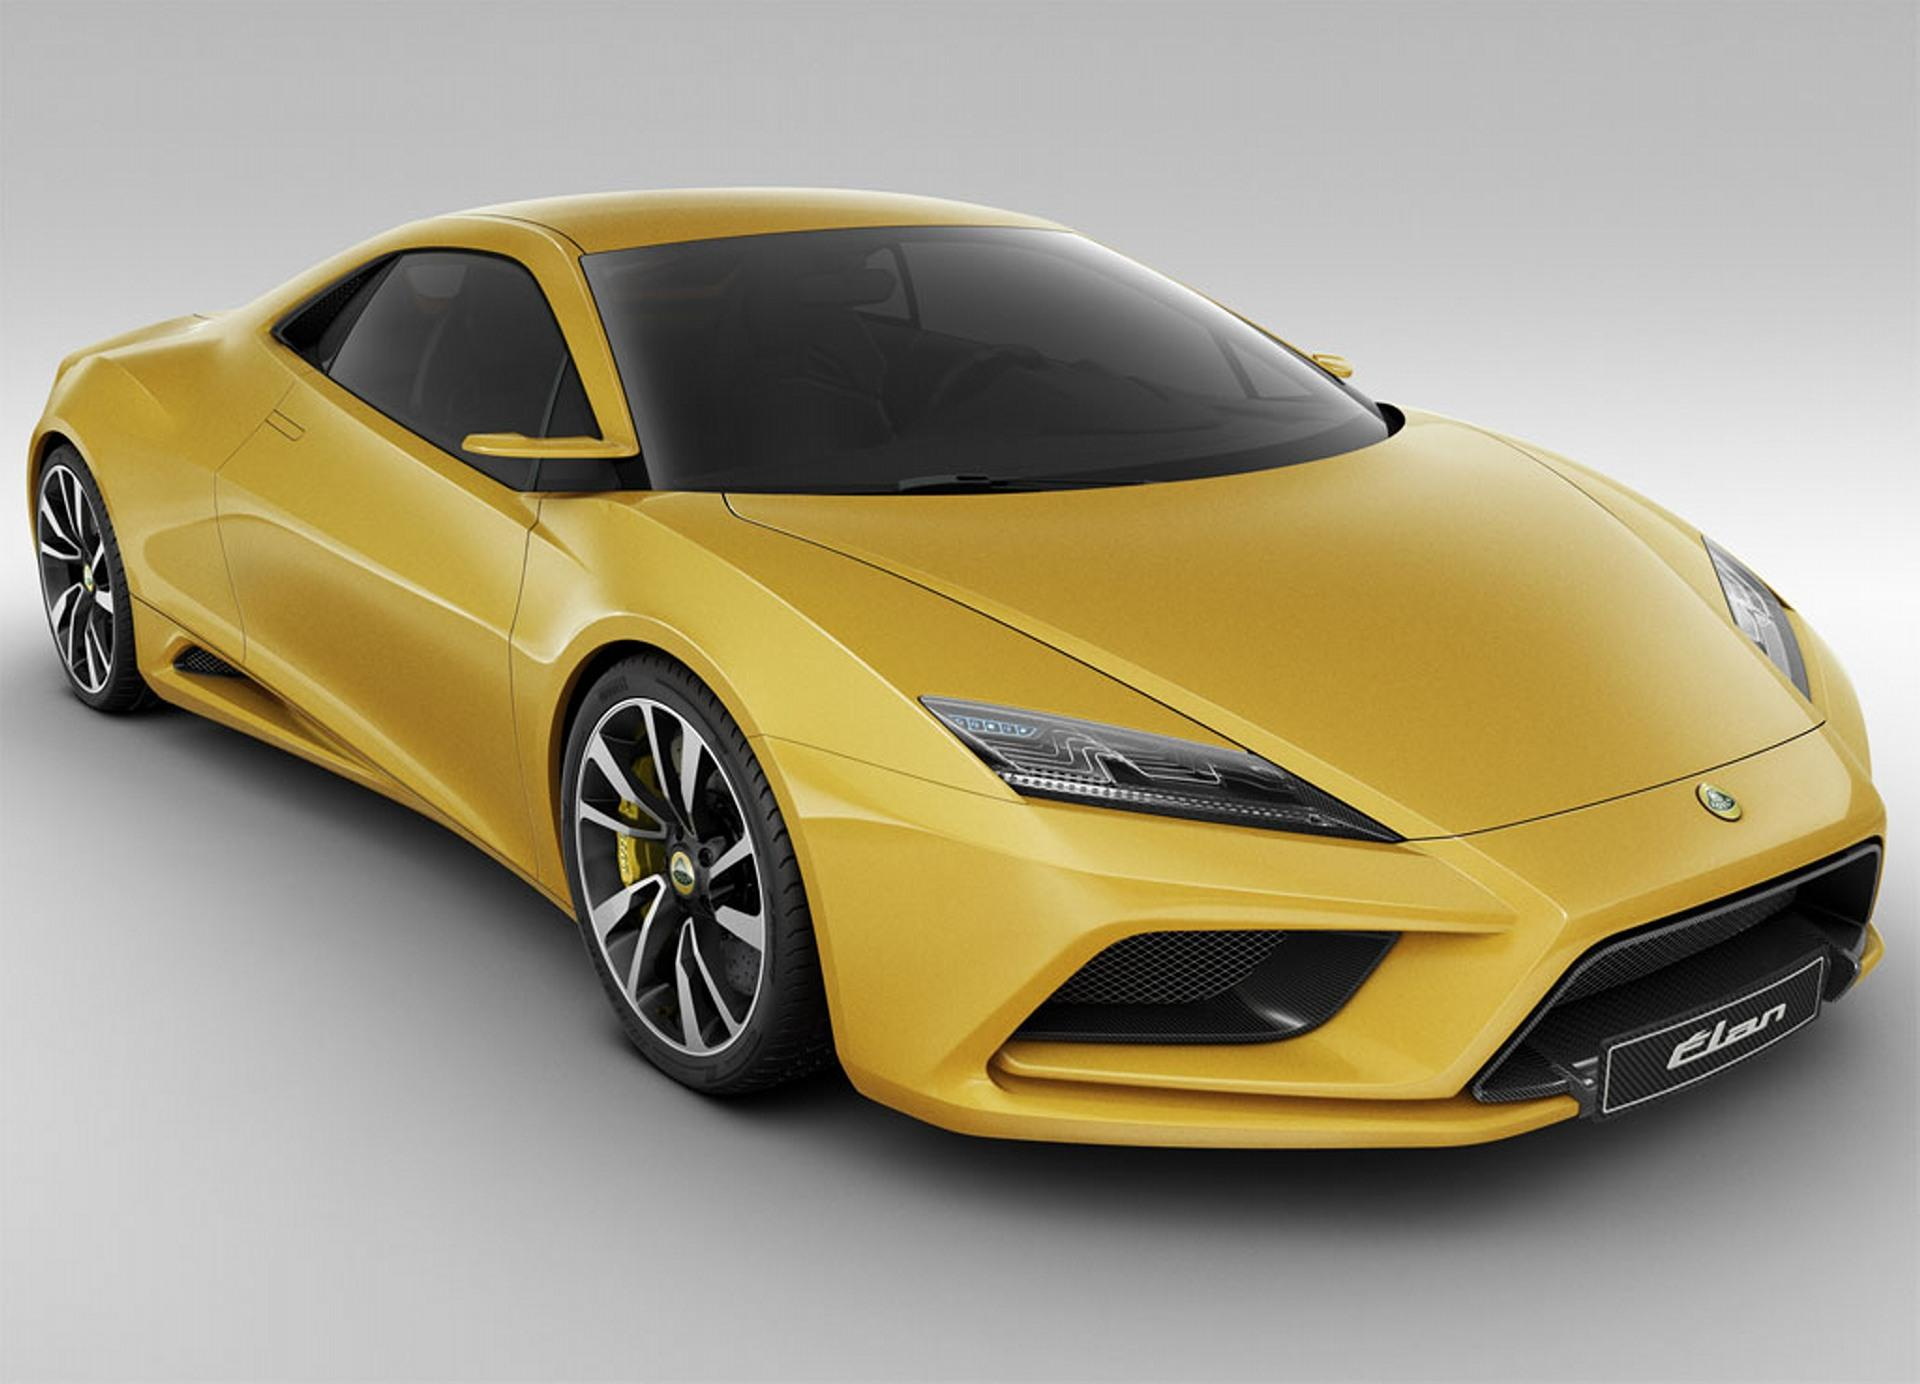 2010 Lotus Elan Concept News and Information, Research, and History